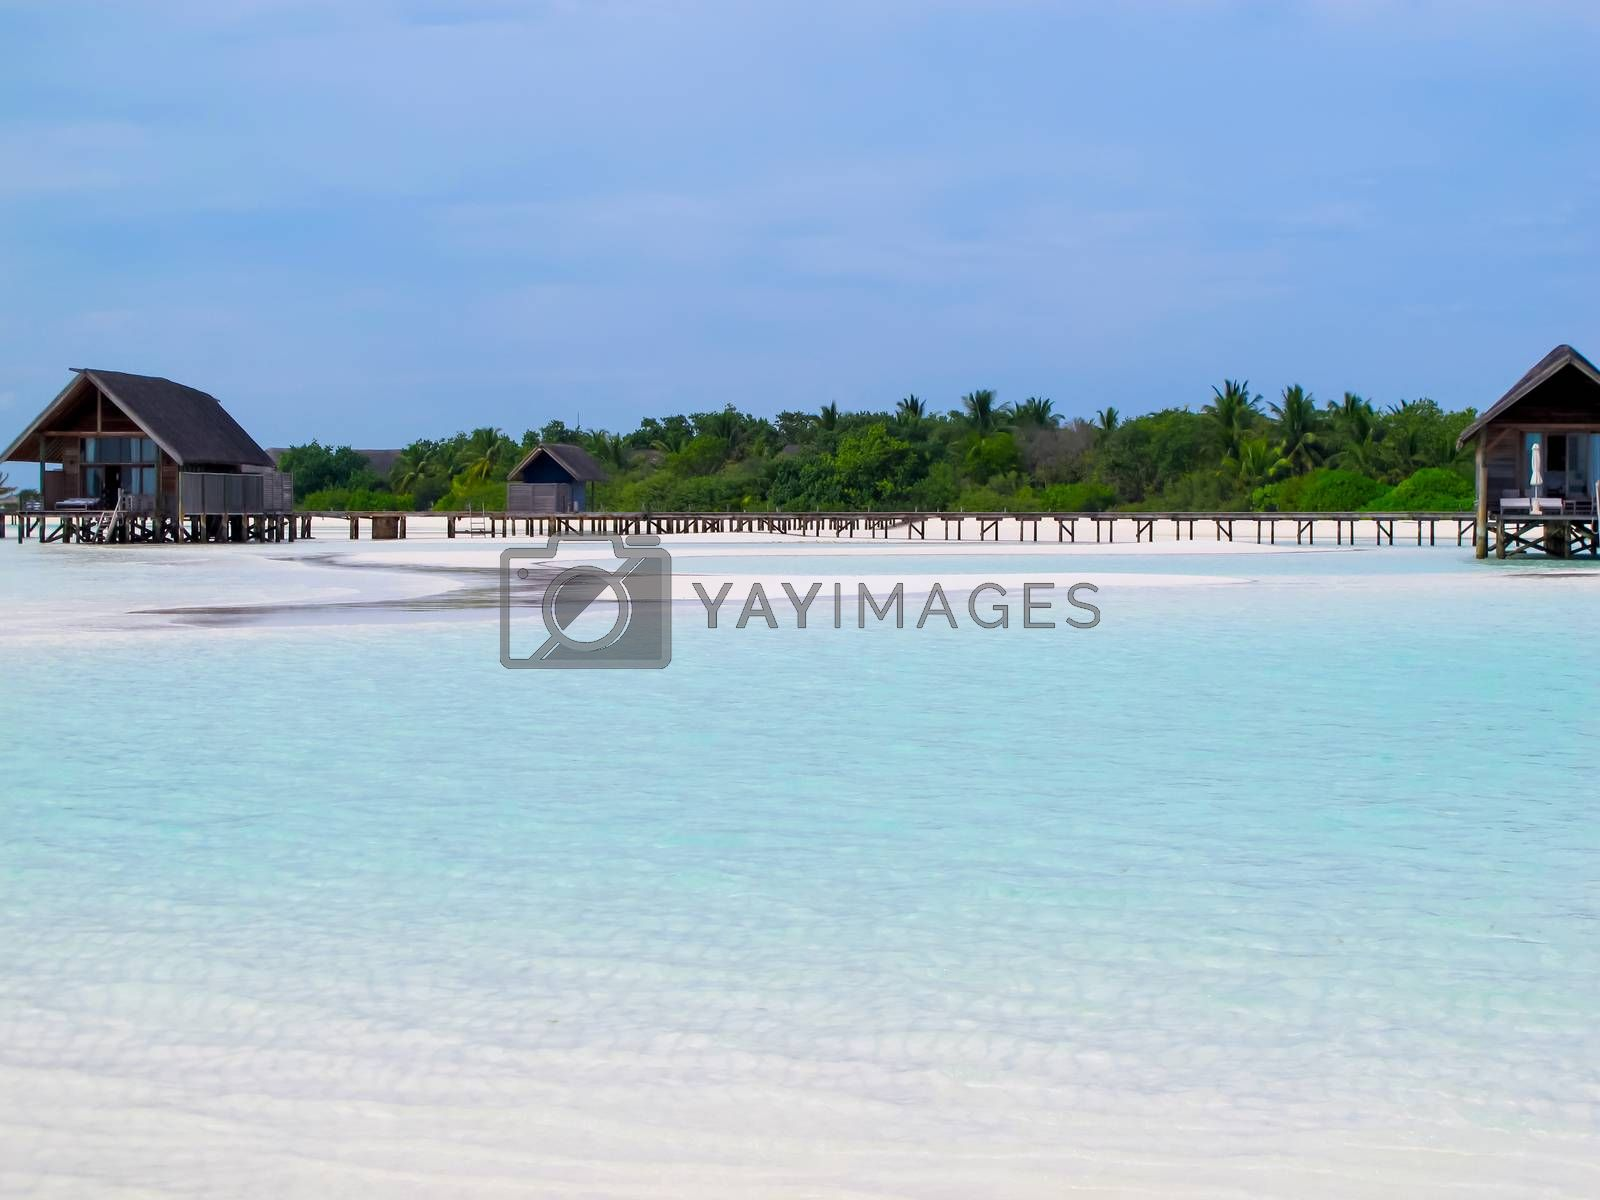 Water village in the Maldives islands